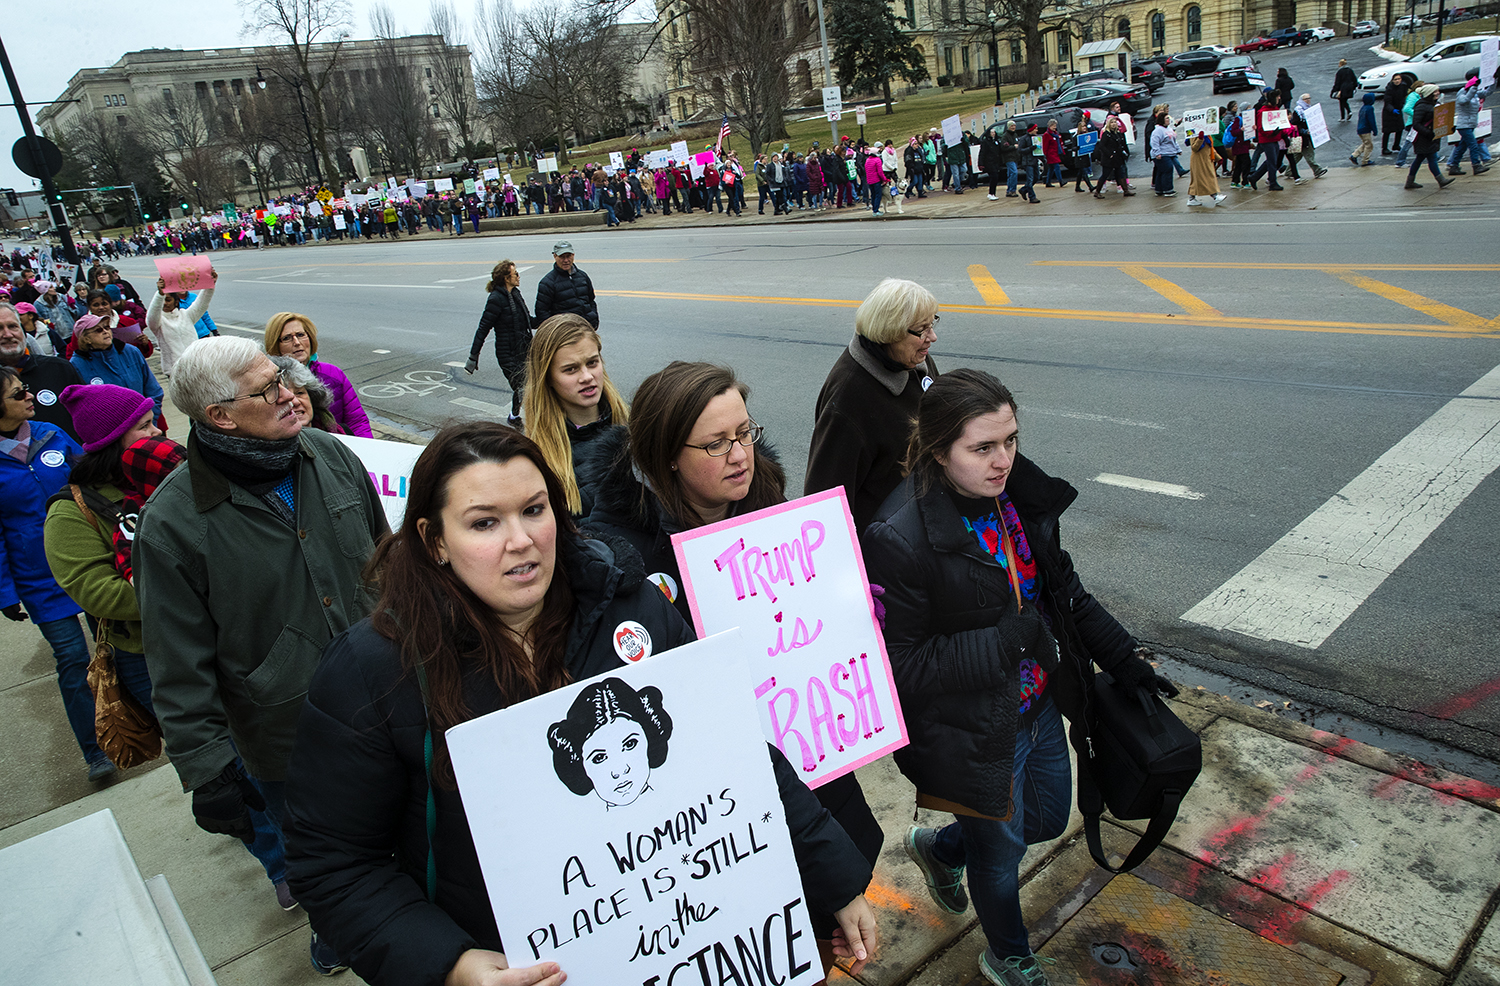 Crowds march down the sidewalks on both sides of Second Street as they travel from the Lincoln Statue at the Illinois Capitol to the Old State Capitol plaza  during the Action Illinois Springfield 'Women's March to the Polls' rally and march in Springfield, Ill., Saturday, Jan. 20, 2018. [Ted Schurter/The State Journal-Register]